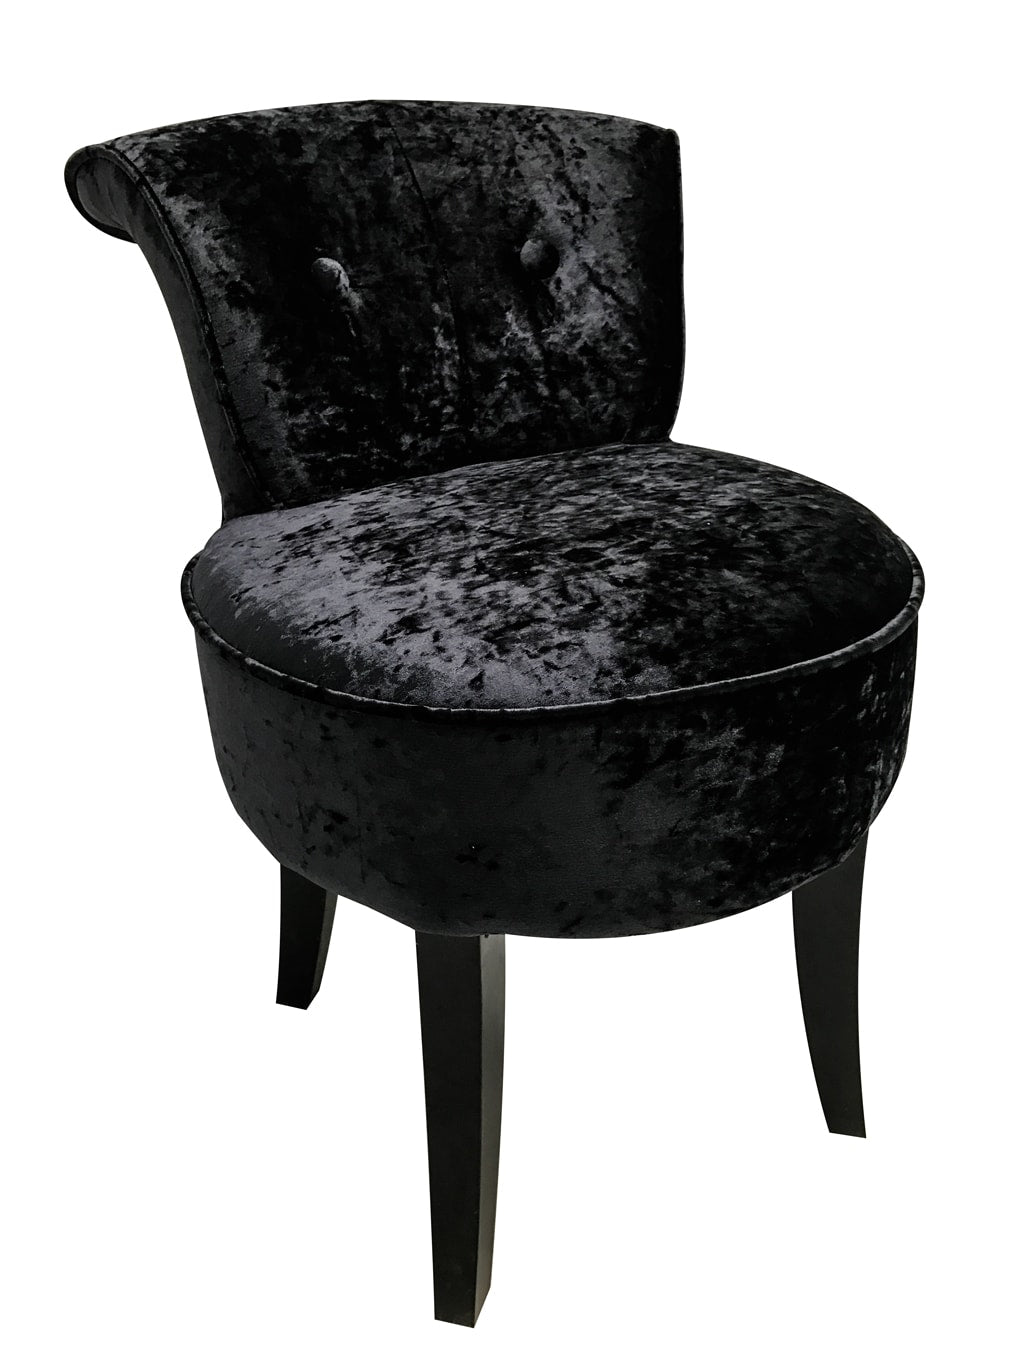 Small Occasional Black Chair